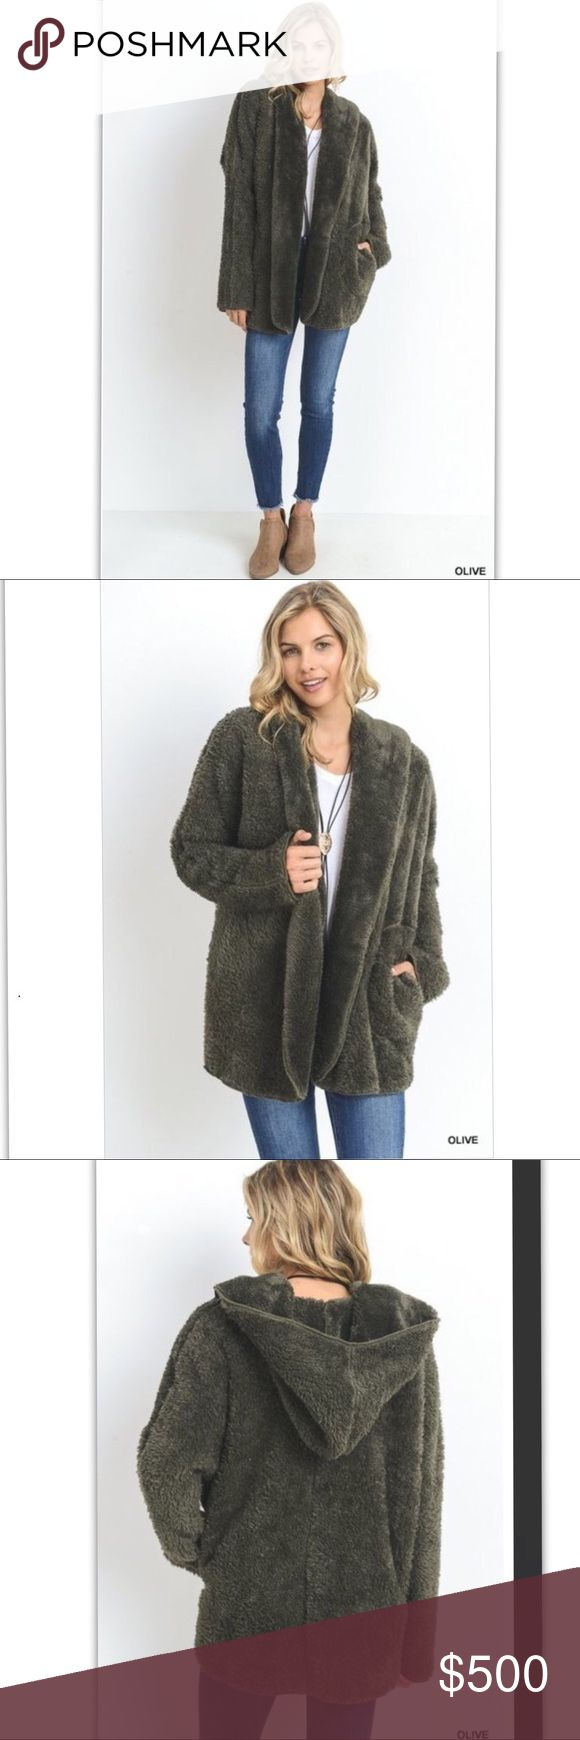 PREVIEW Solid faux fur hooded jacket In Olive Description: -Solid faux fur hooded jacket with long sleeves and side pockets. Unlined. Non-sheer. Lightweight.  -Model is 5'8'' and is wearing a Small.  Category: Jackets    Content: 100& POLYESTER Jackets & Coats